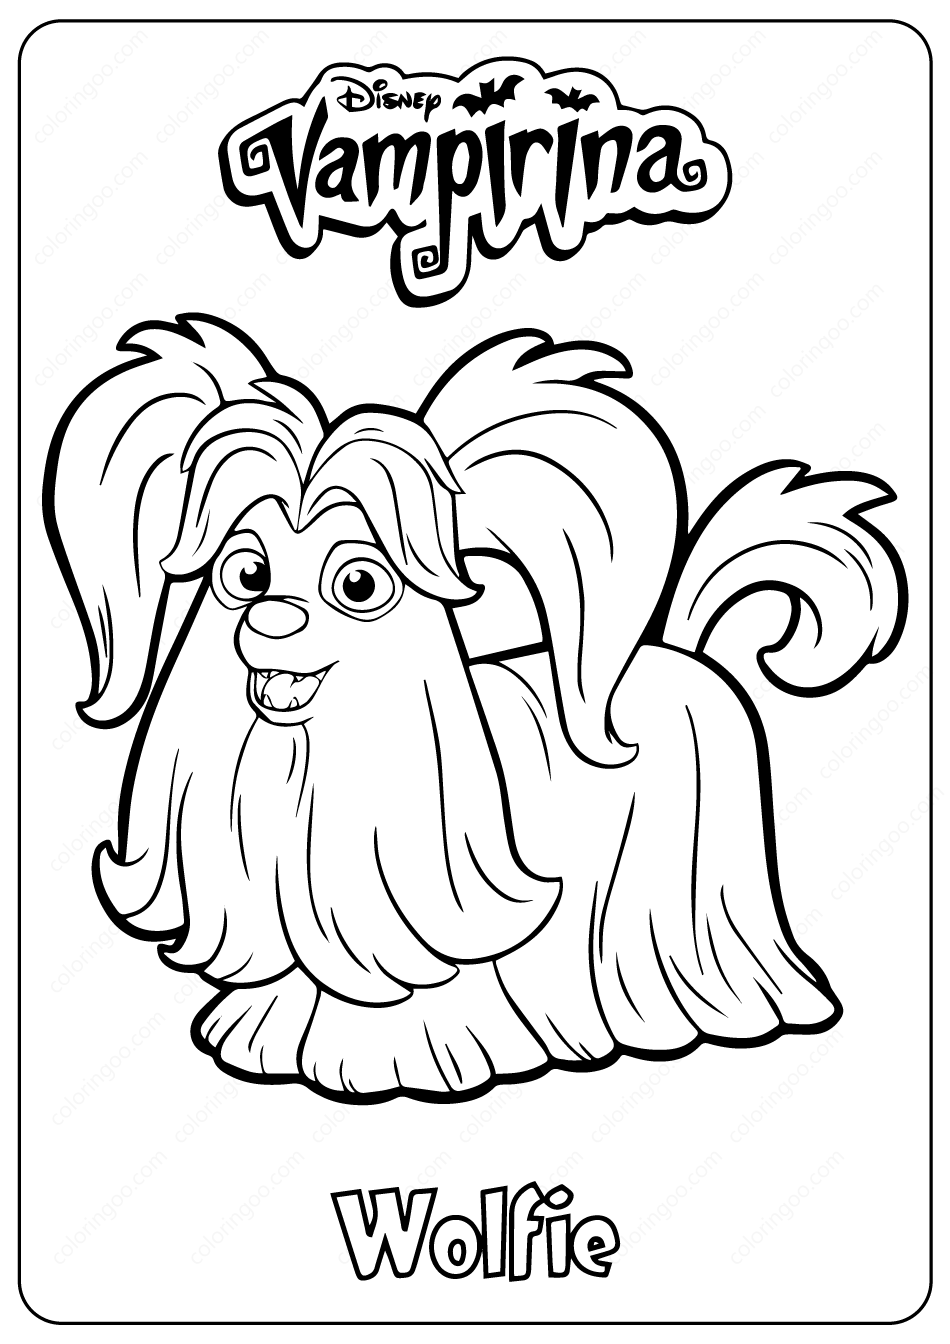 Disney Vampirina Wolfie Coloring Pages  Coloring pages, Halloween